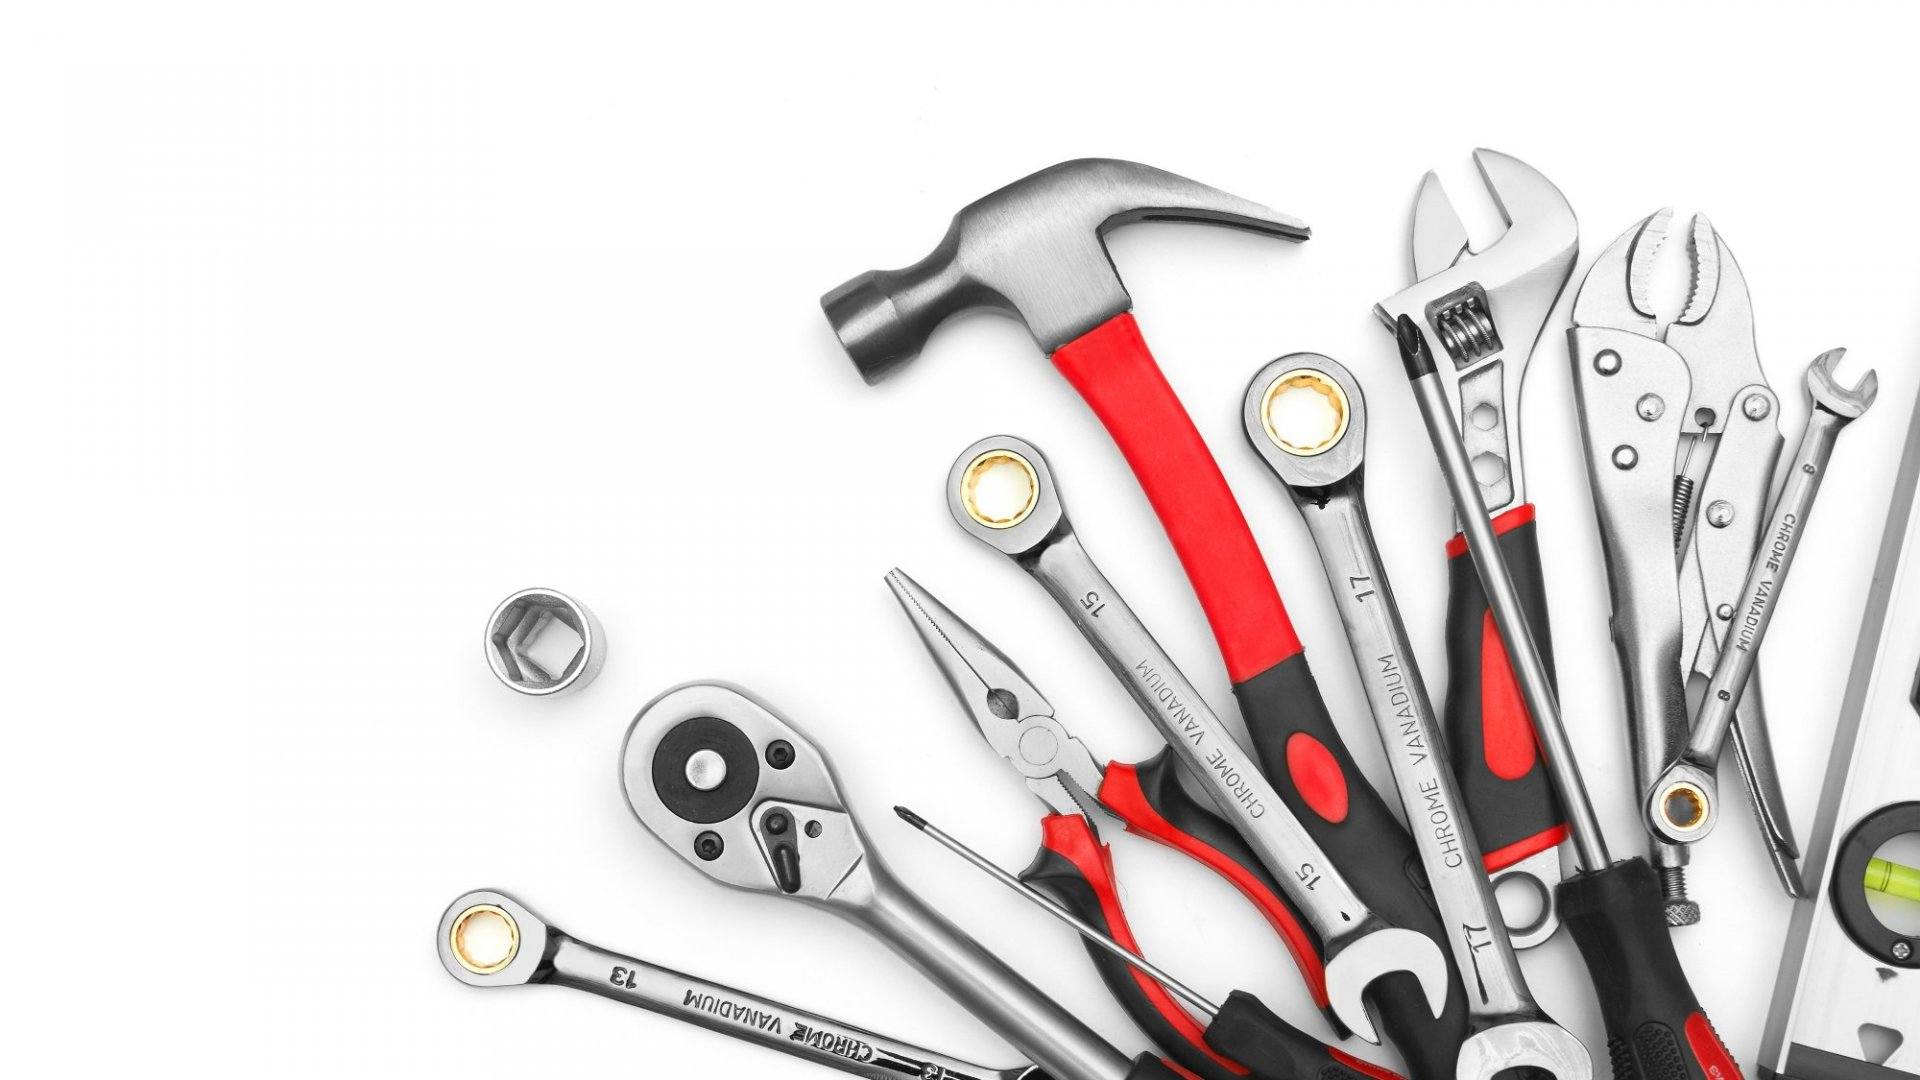 48 Tested Tools for Boosting Business at Every Step